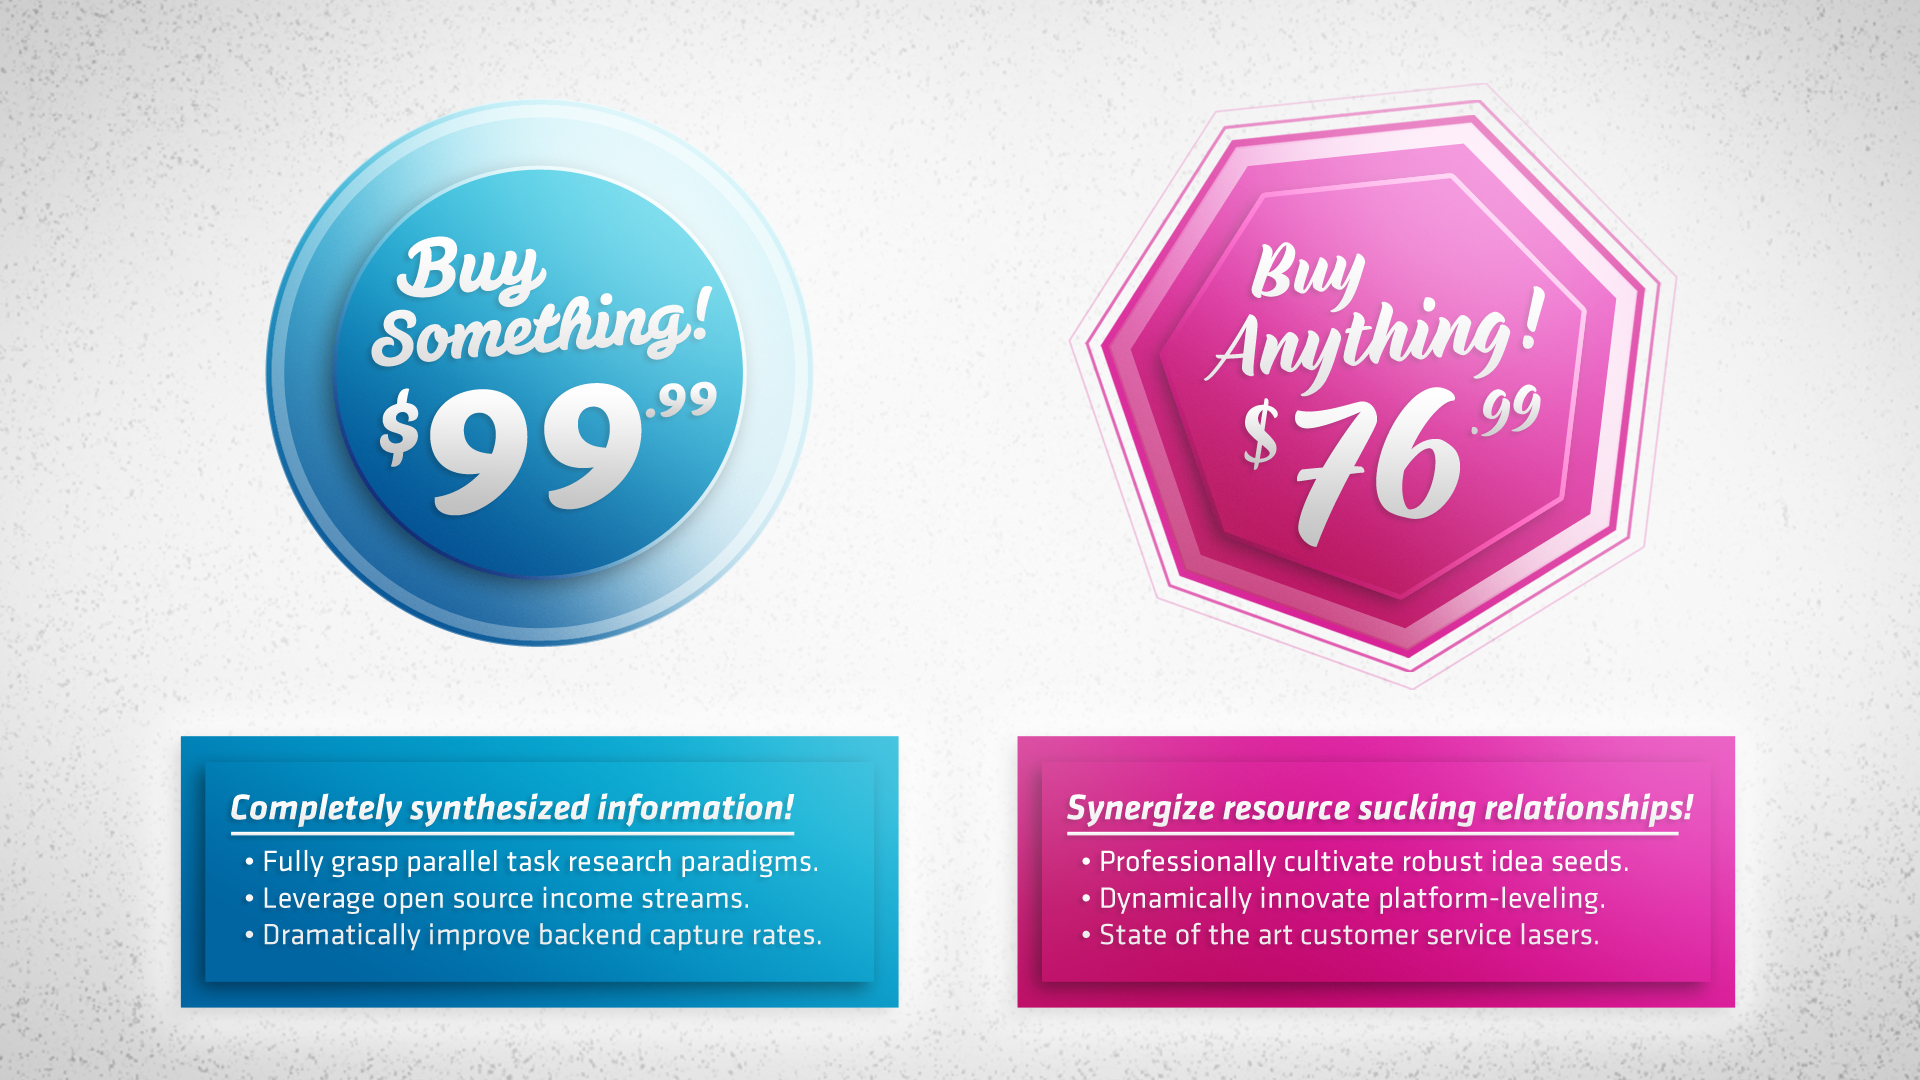 BuySomethingBuyAnything_DesignTemplate_Portfolio